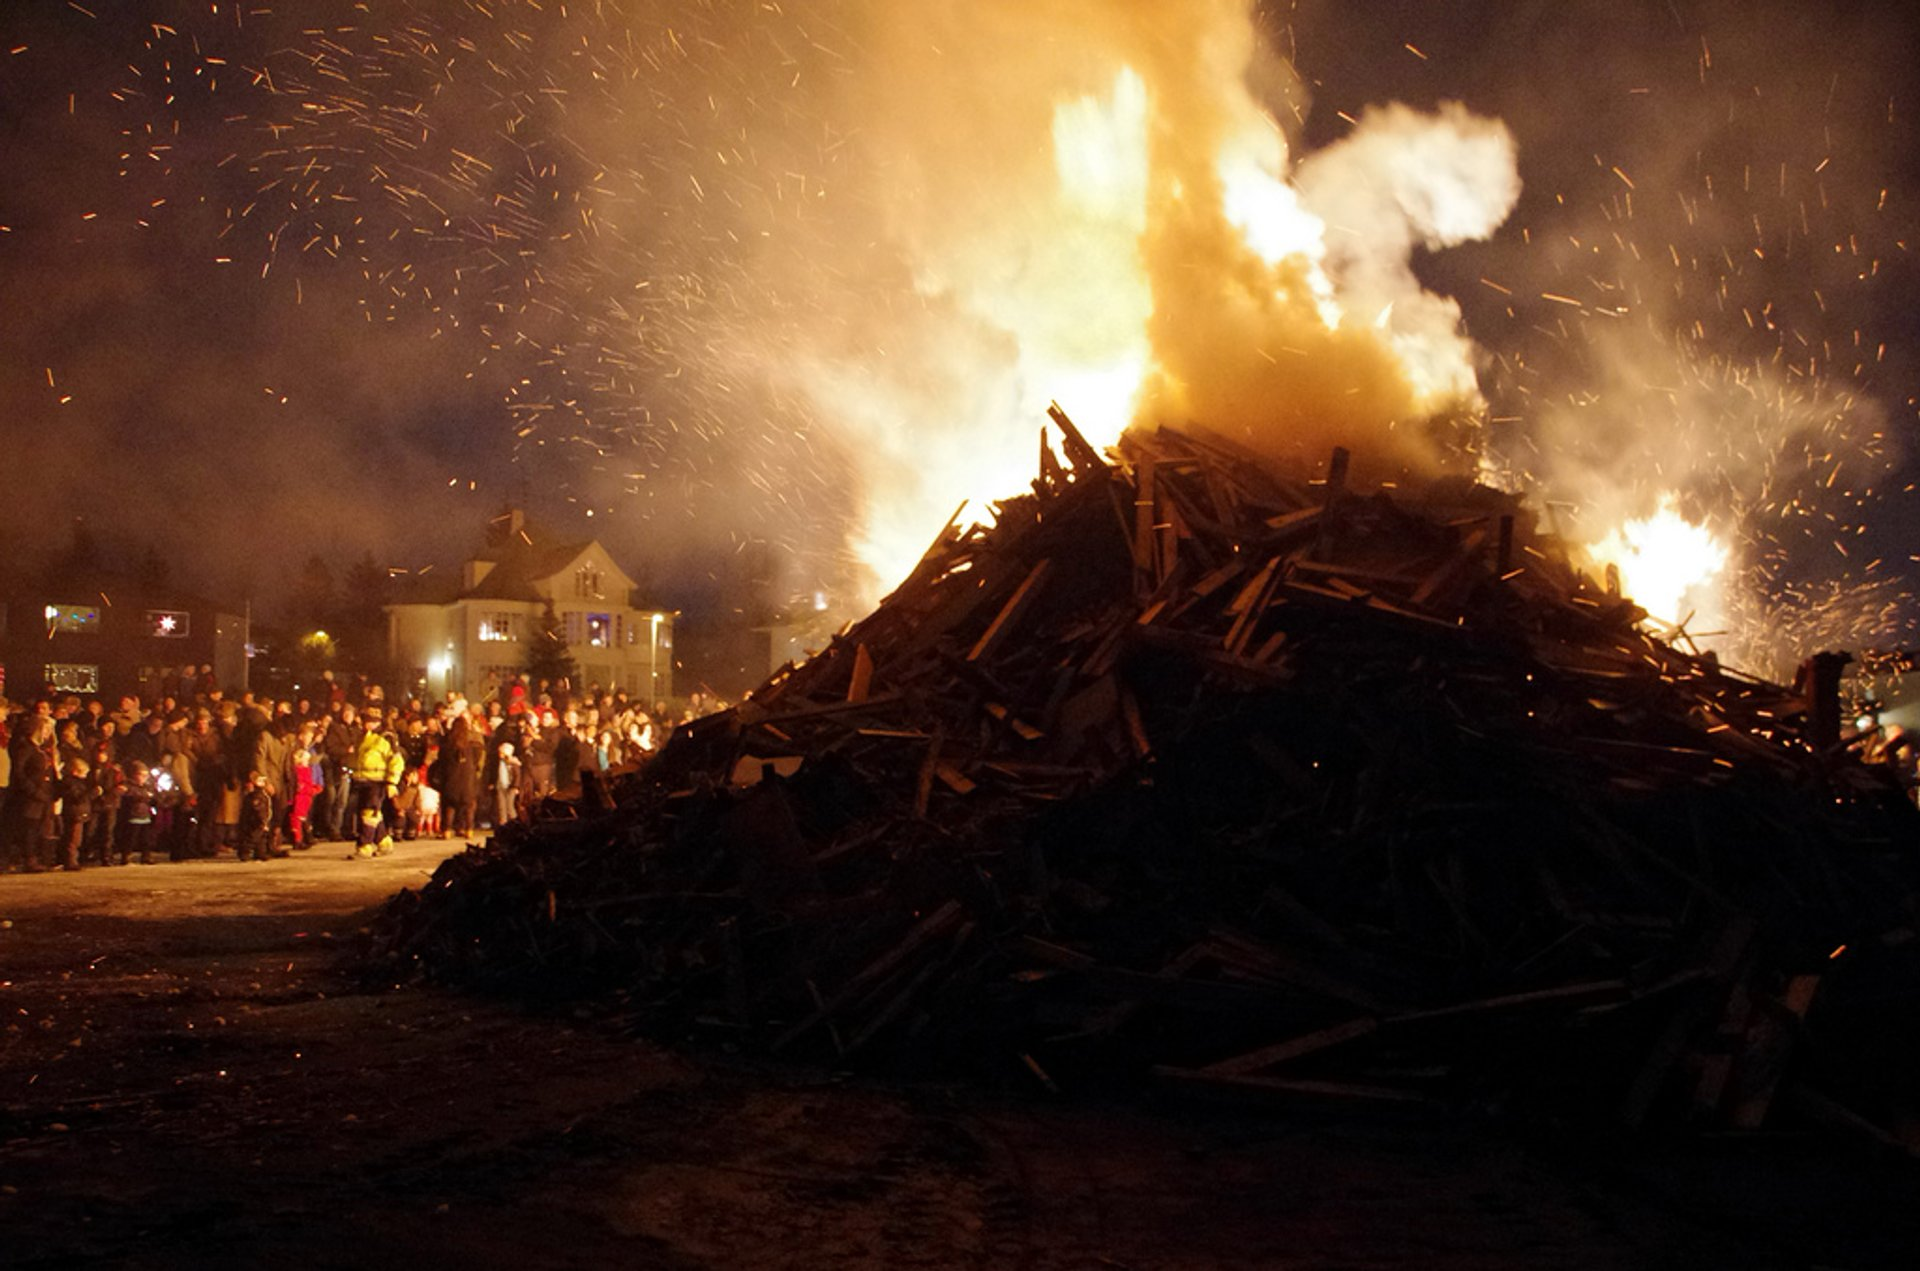 New Year's Bonfires in Reykjavik 2019 - Best Time